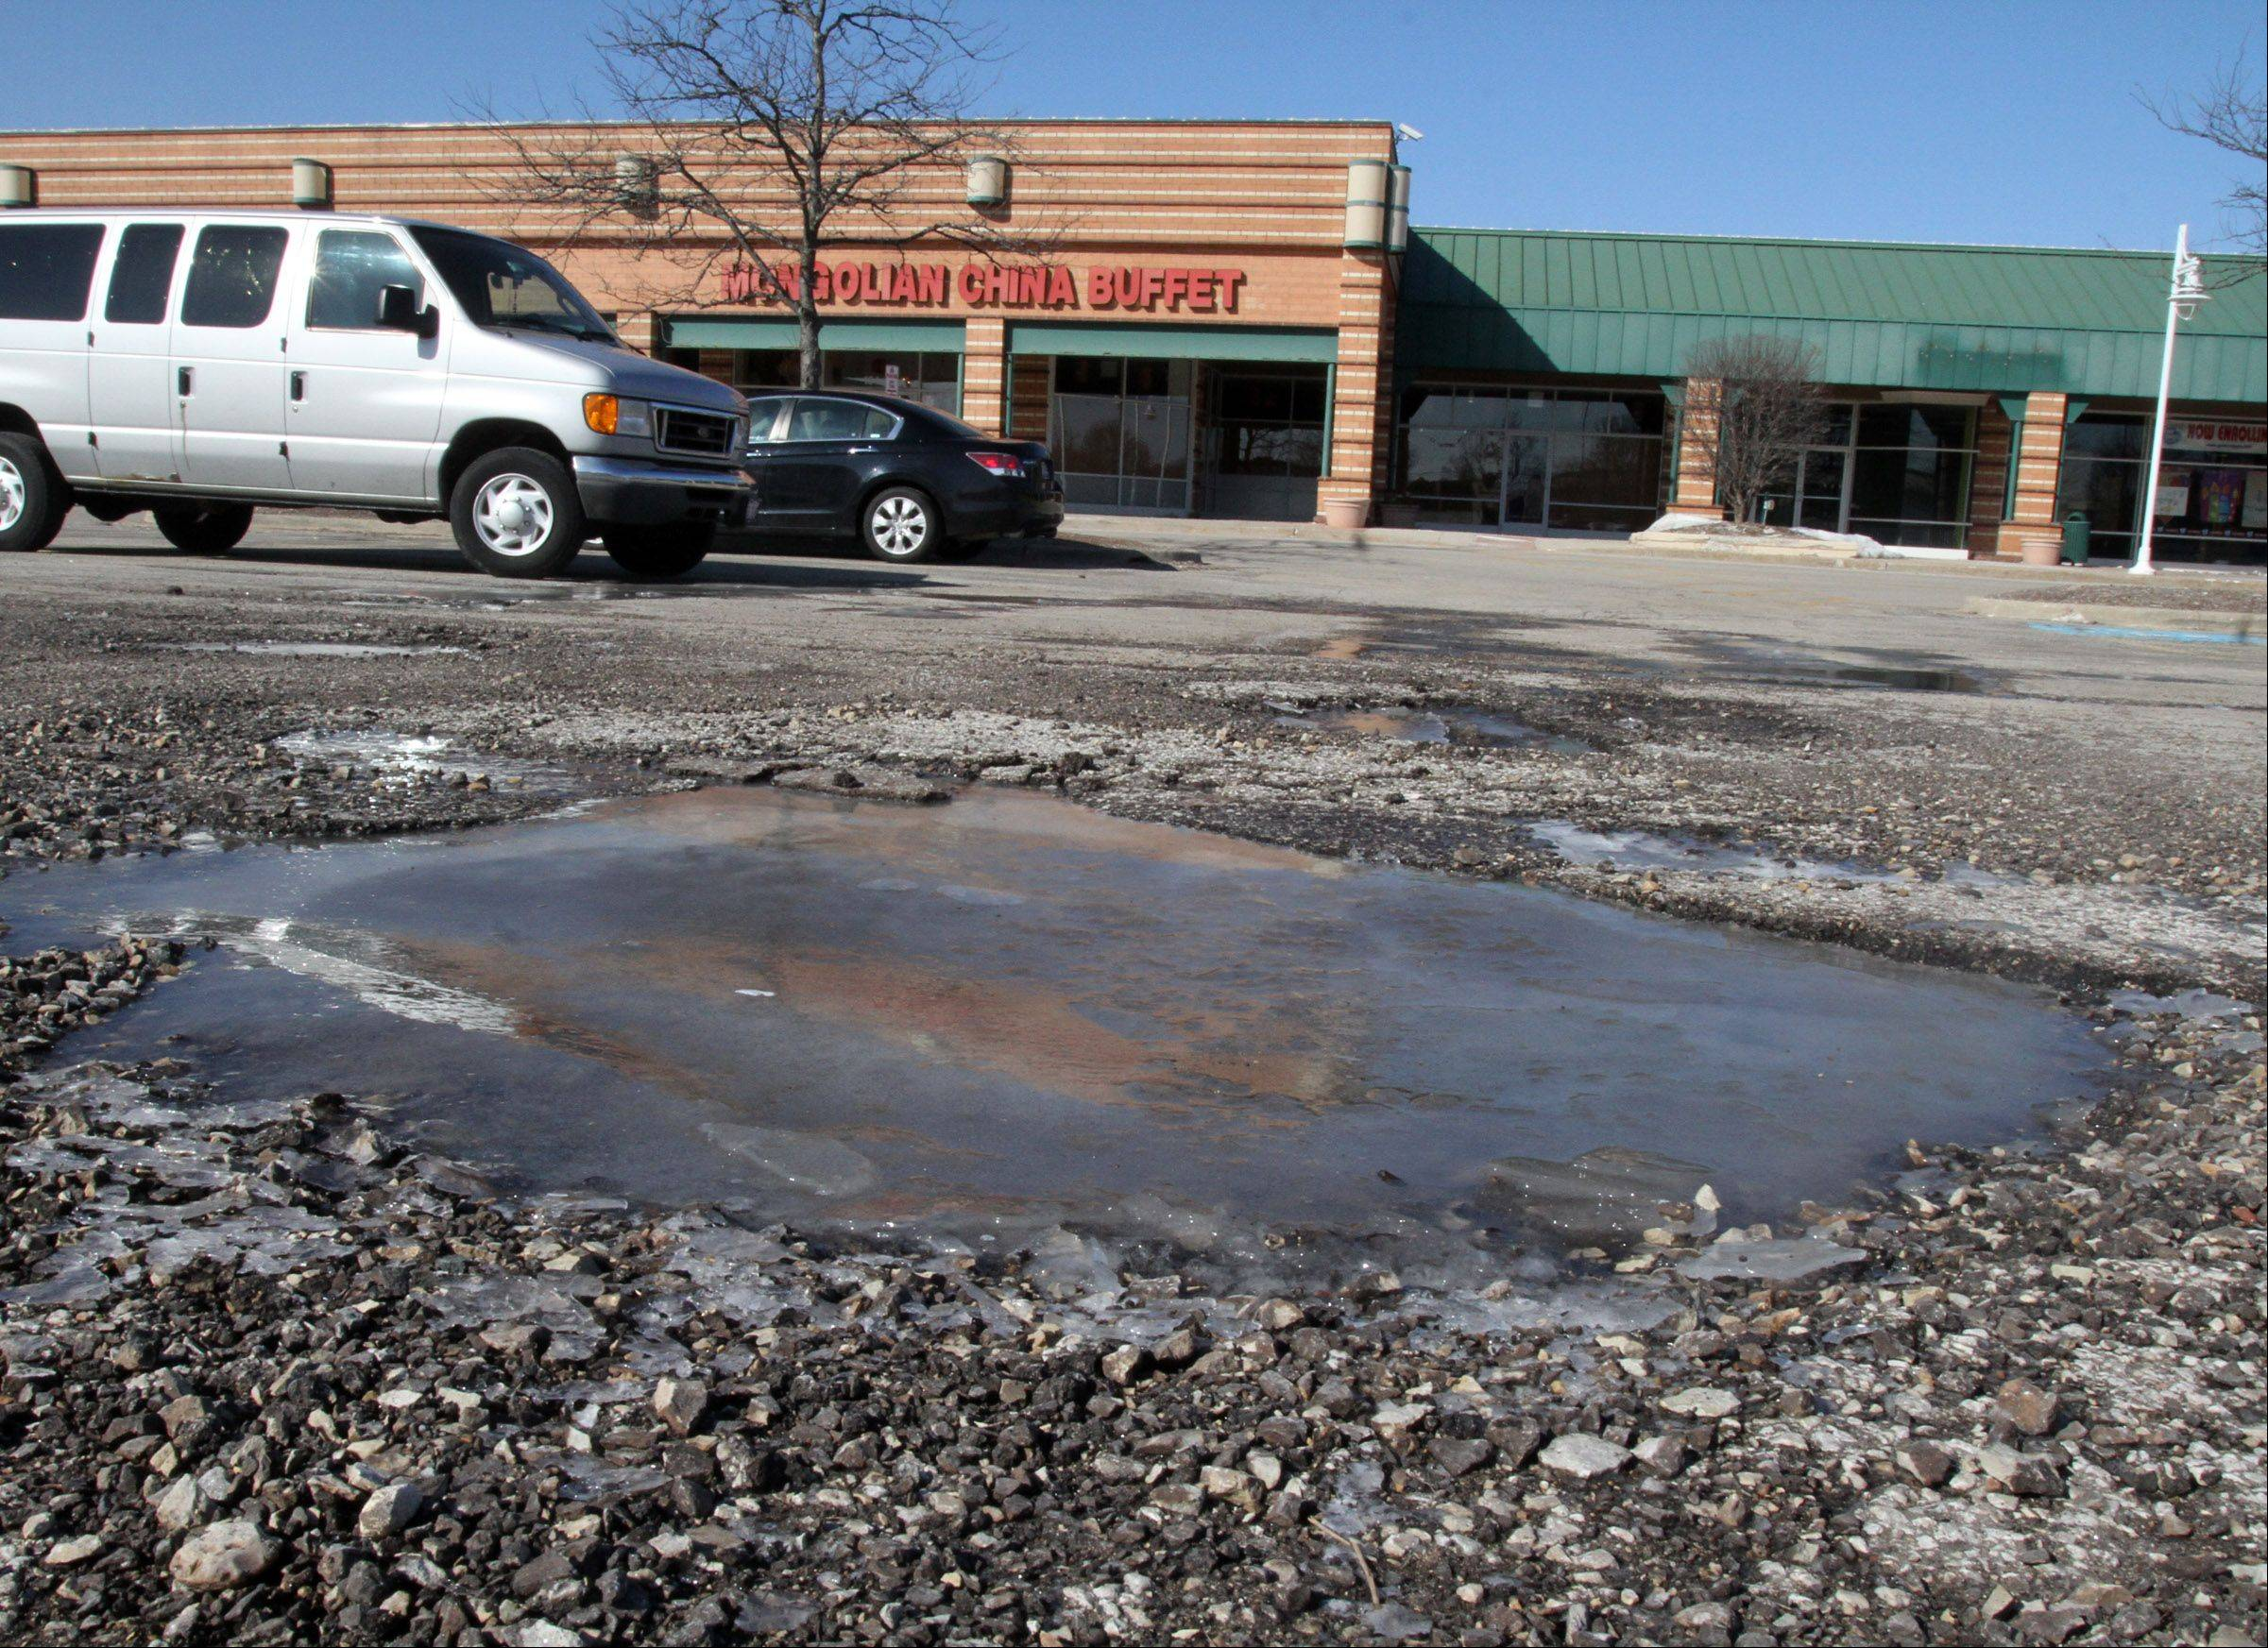 This is a pothole filled with frozen water in the parking lot at Buffalo Grove Town Center at Lake-Cook Road and McHenry Road in Buffalo Grove on Wednesday, March 20.